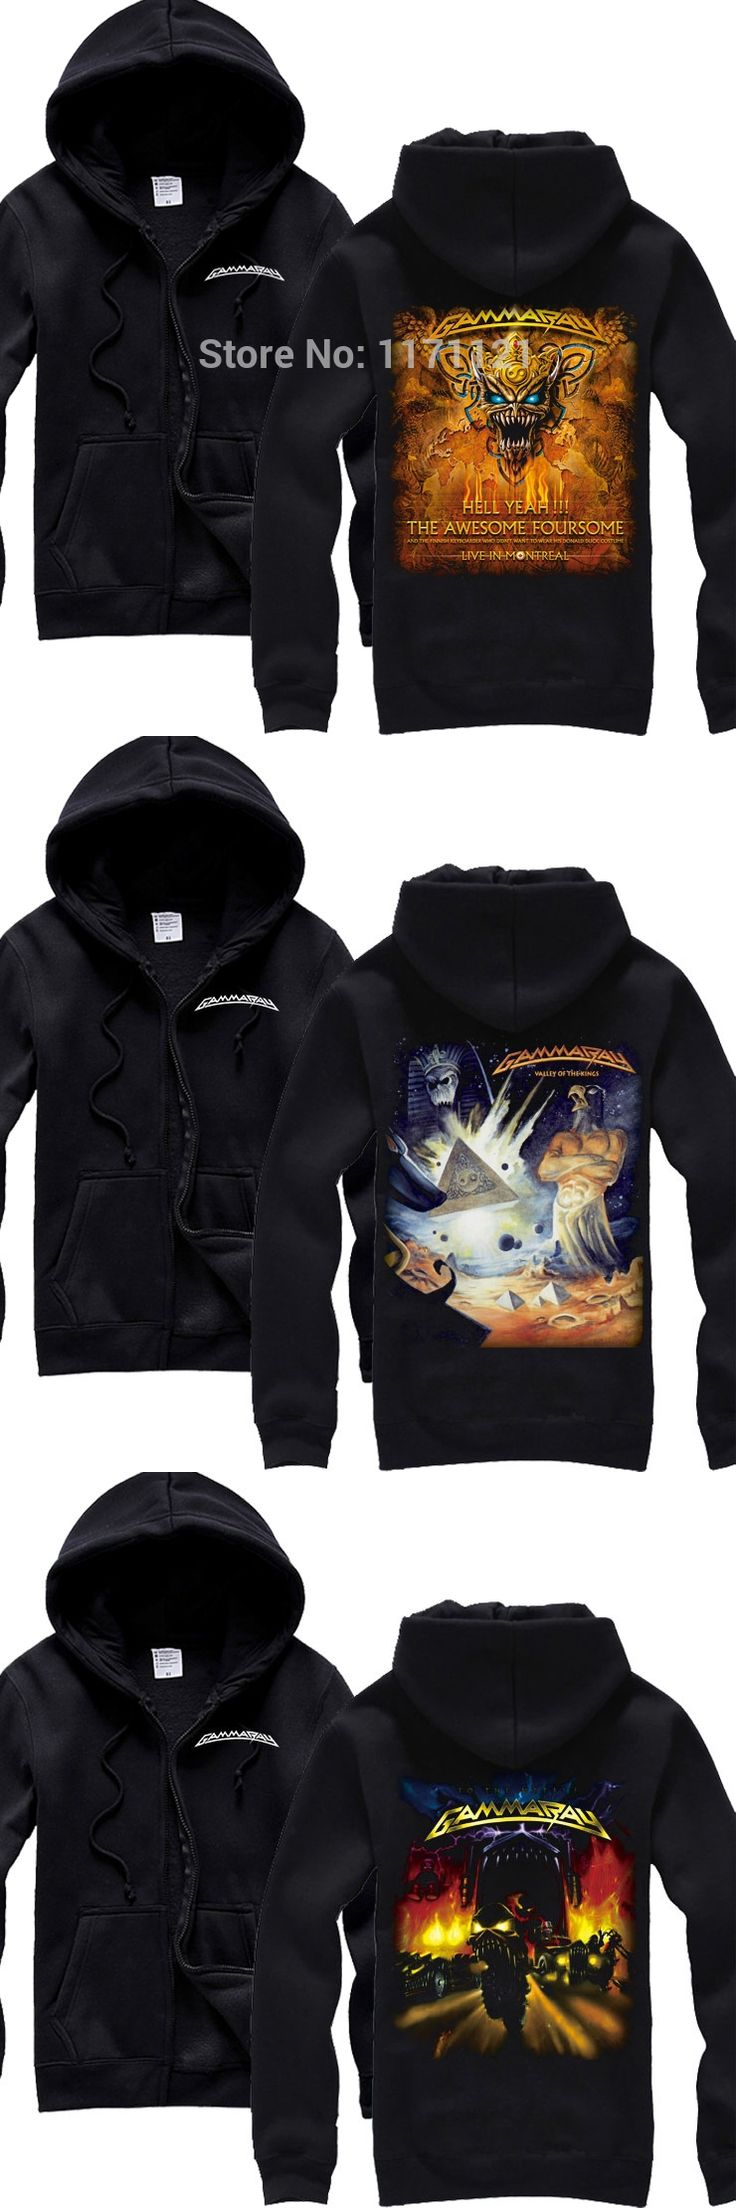 GAMMA RAY Hell yeah  The awesome foursome Nucle Heavy Metal Power Metal new Hoodie